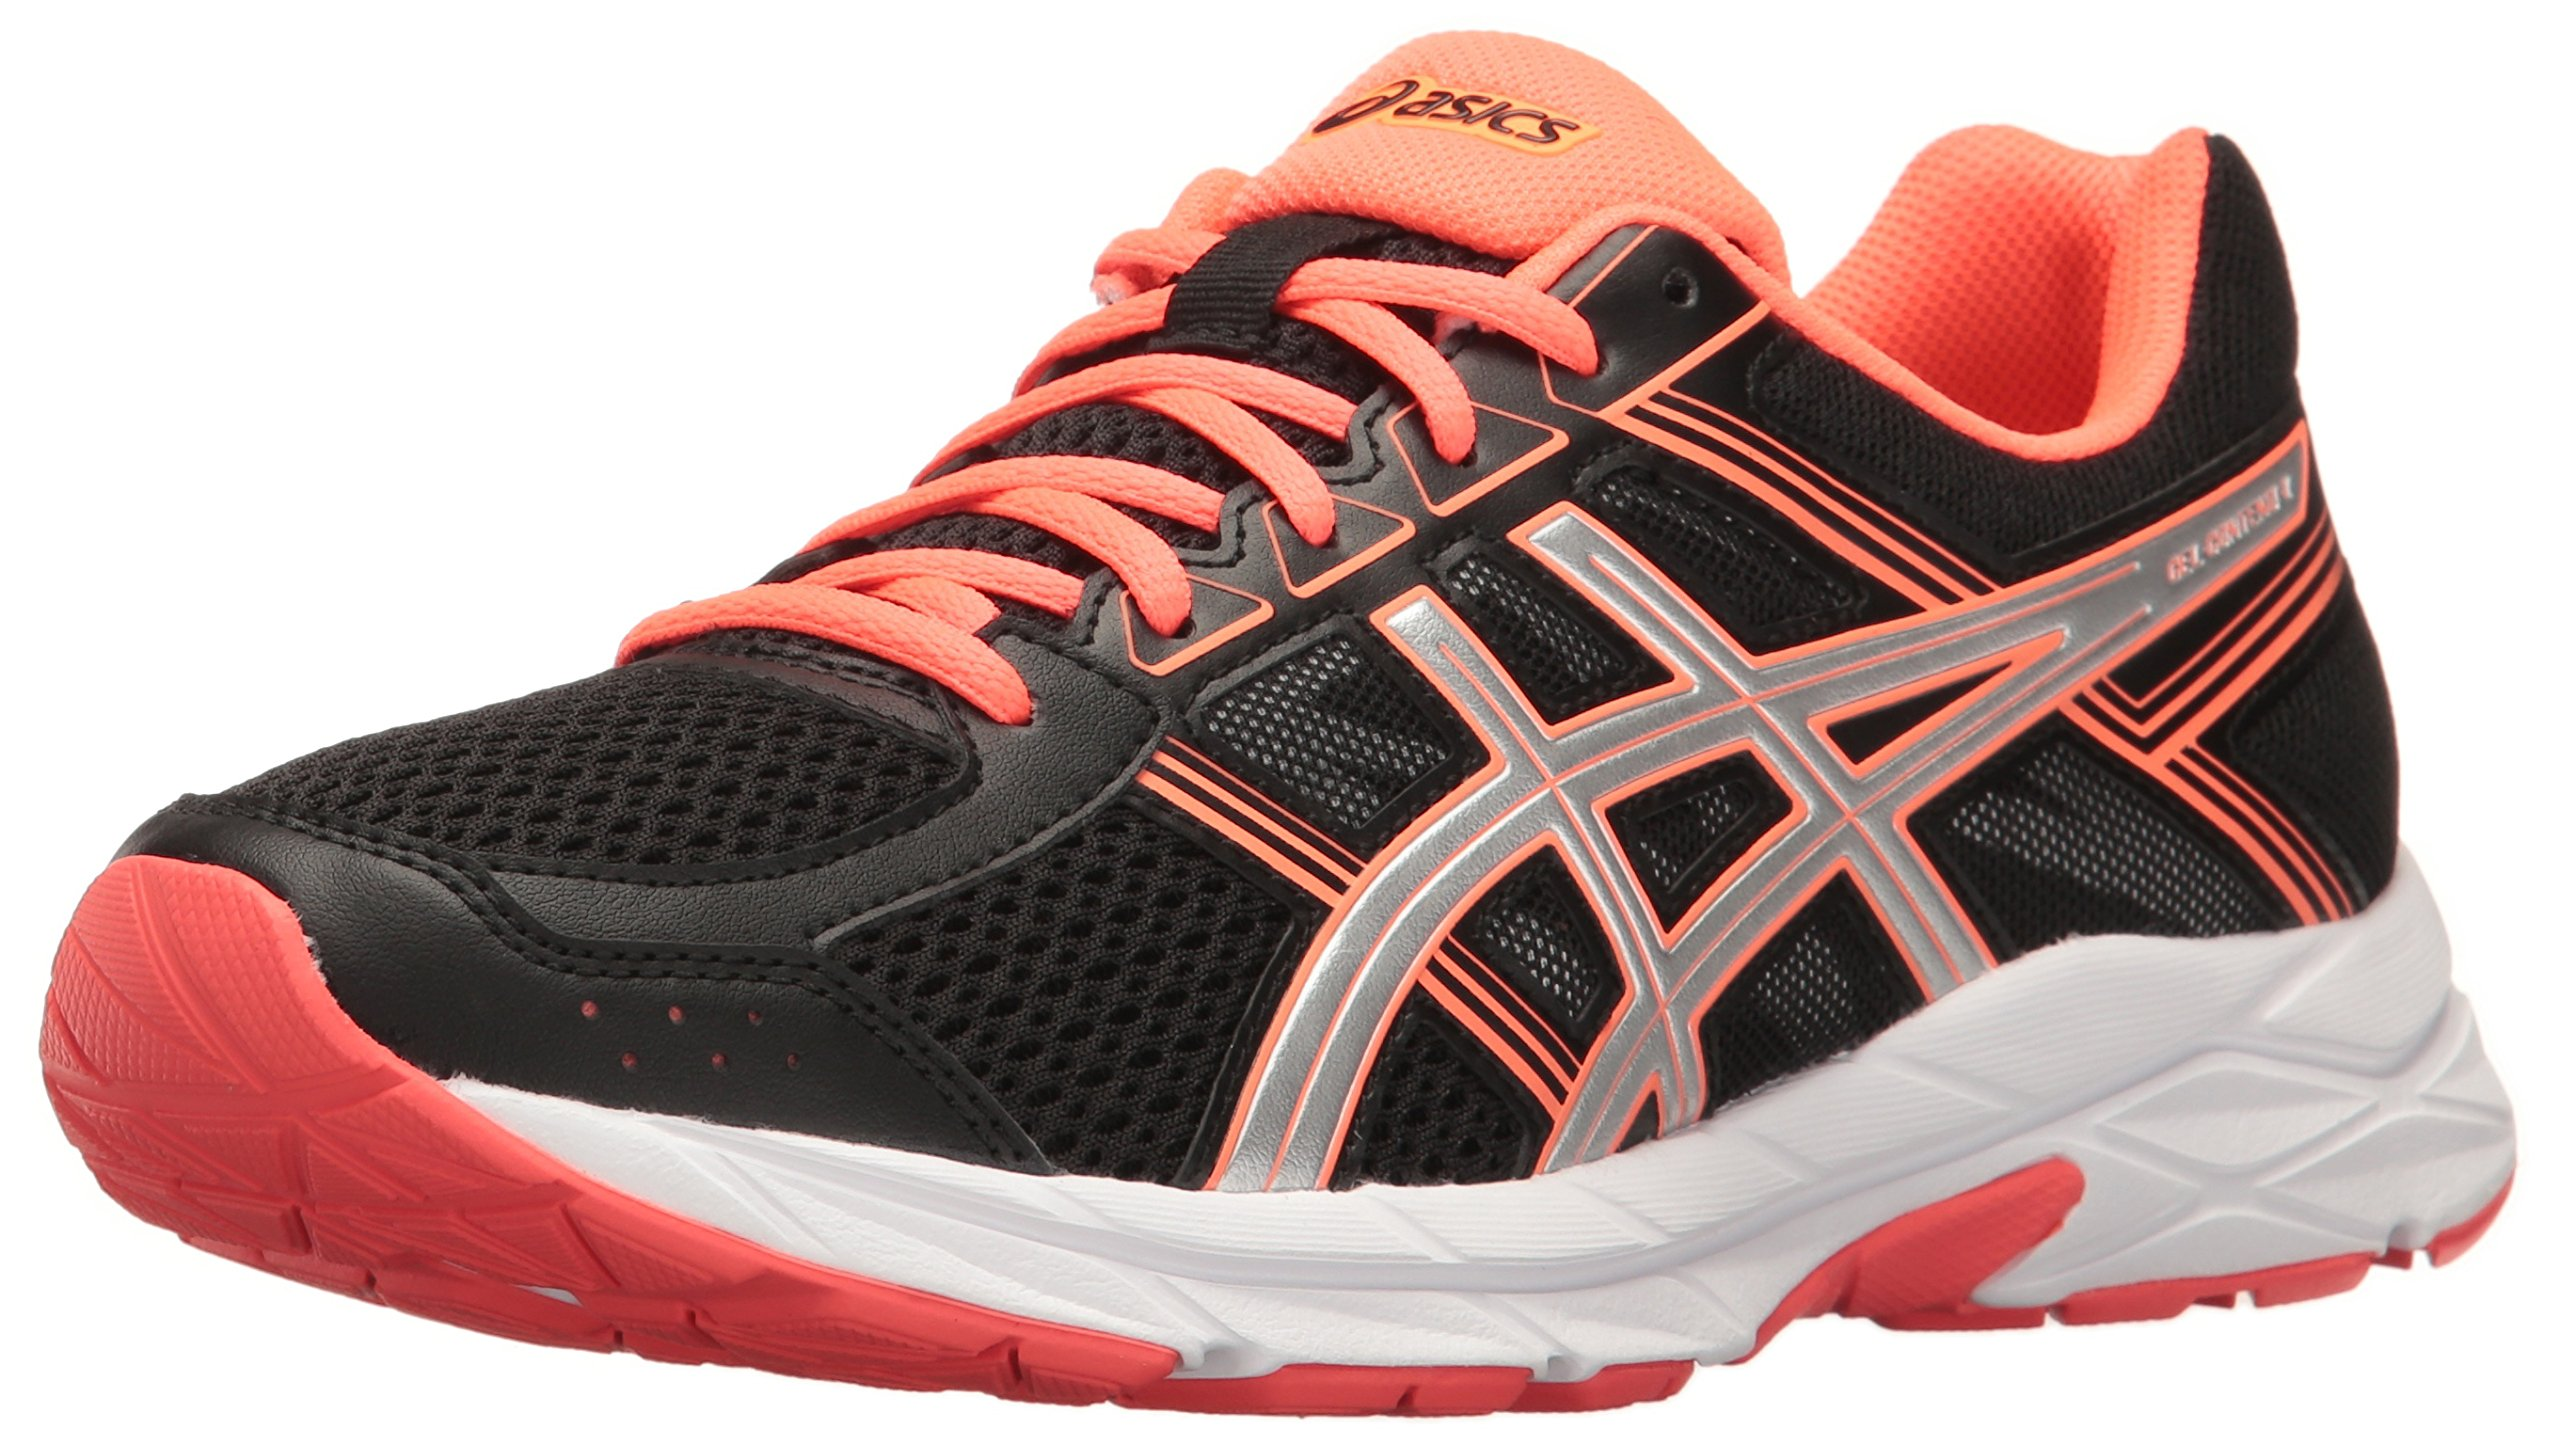 ASICS Women's Gel-Contend 4 Running Shoe, Black/Silver/Flash Coral, 5 M US